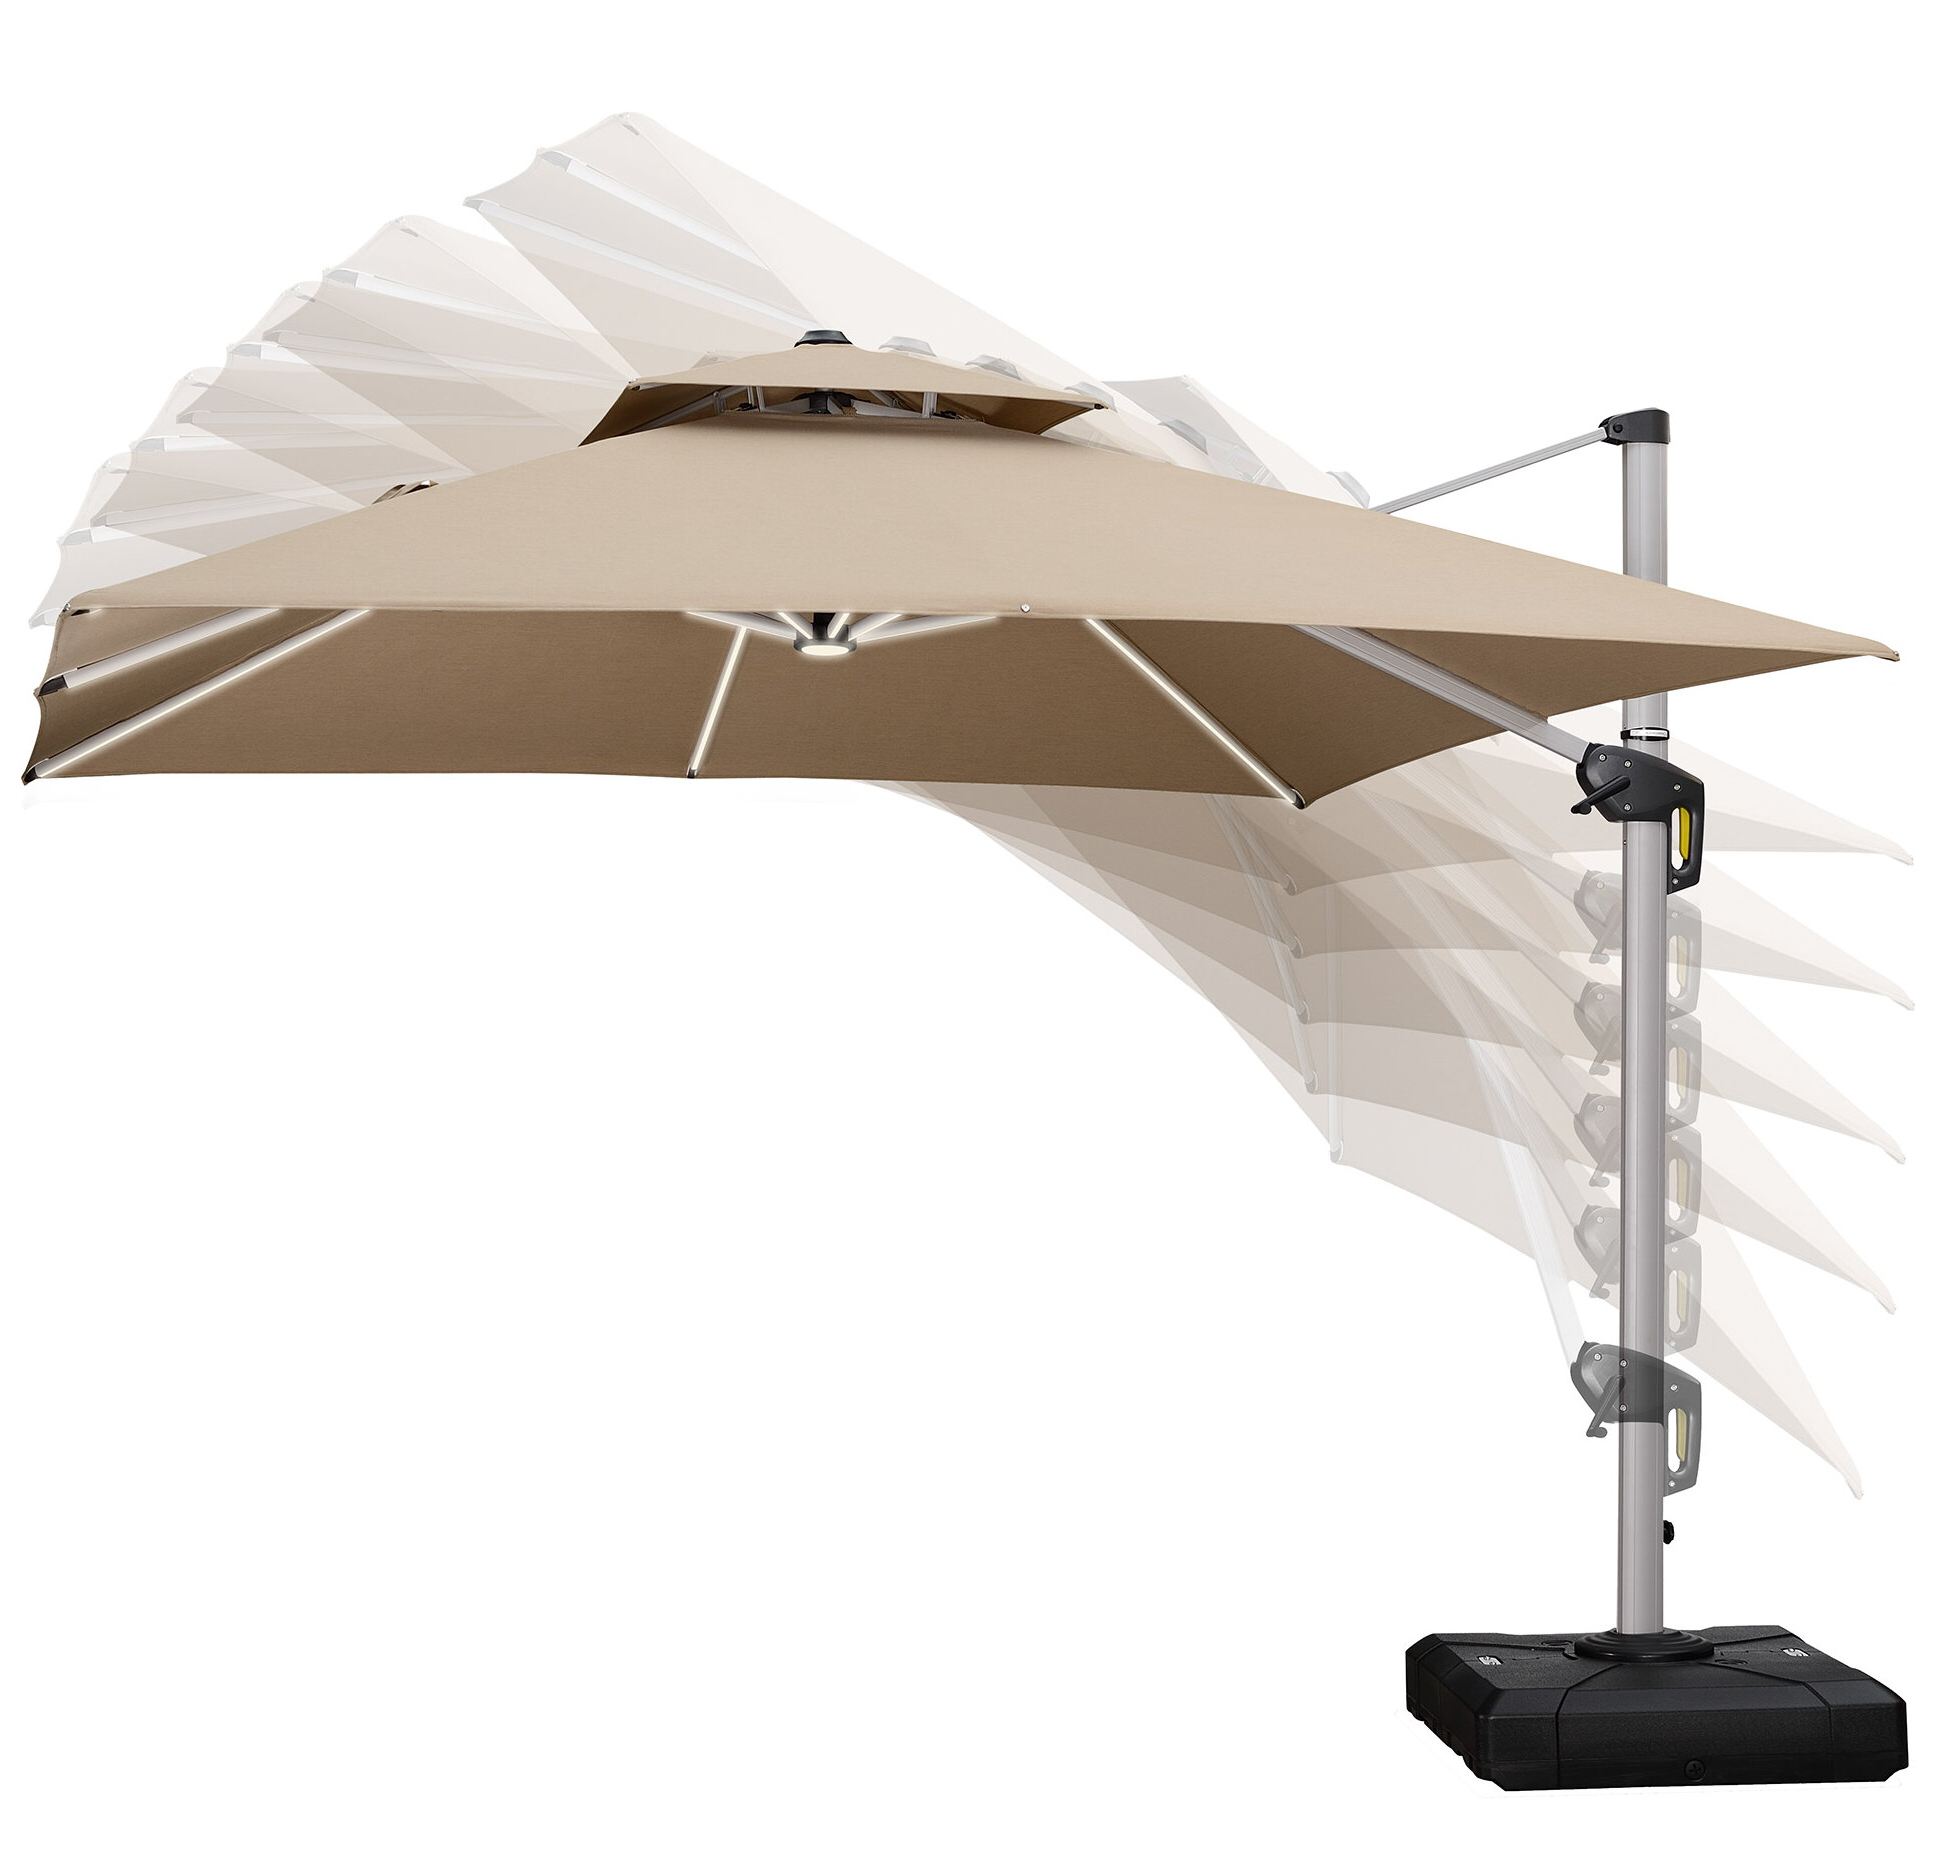 Dermott 10' Square Cantilever Umbrella With Regard To Best And Newest Voss Cantilever Sunbrella Umbrellas (View 3 of 20)